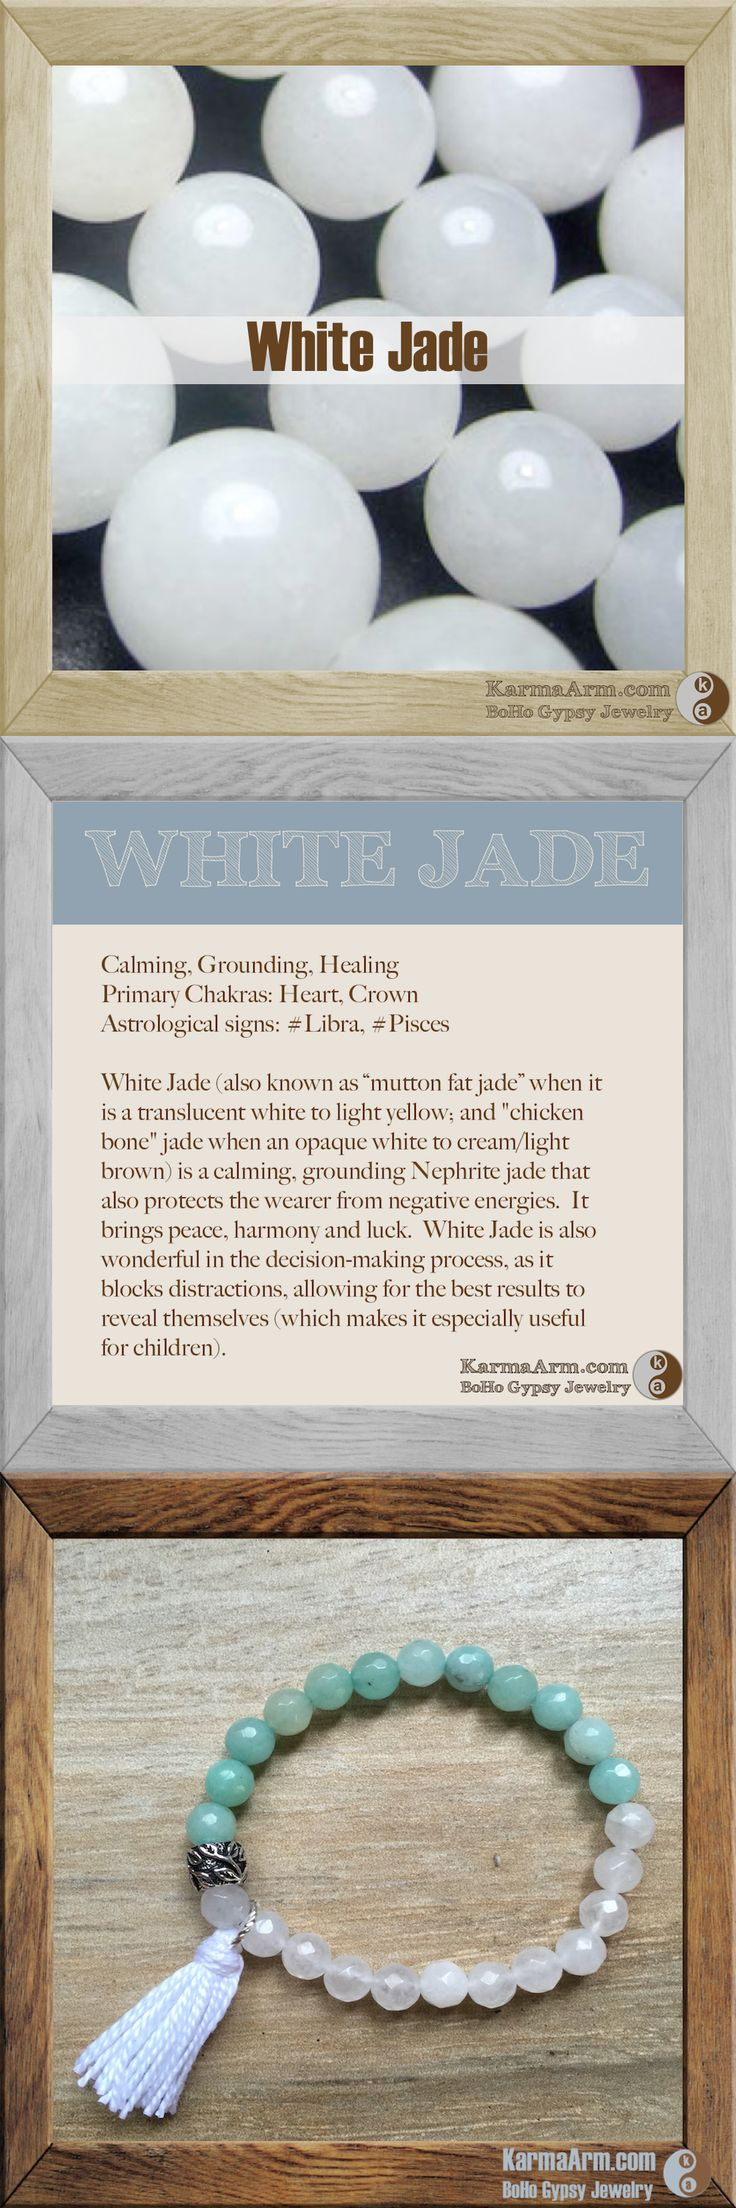 "WHITE JADE: Calming, Grounding, Healing Primary Chakras: Heart, Crown Astrological signs: #Libra, #Pisces  White Jade (also known as ""mutton fat jade"" when it is a translucent white to light yellow; and ""chicken bone"" jade when an opaque white to cream/light brown) is a calming, grounding Nephrite jade that also protects the wearer from negative energies.  It brings peace, harmony and luck.  White Jade is also wonderful in the decision-making process, as it blocks distractions."